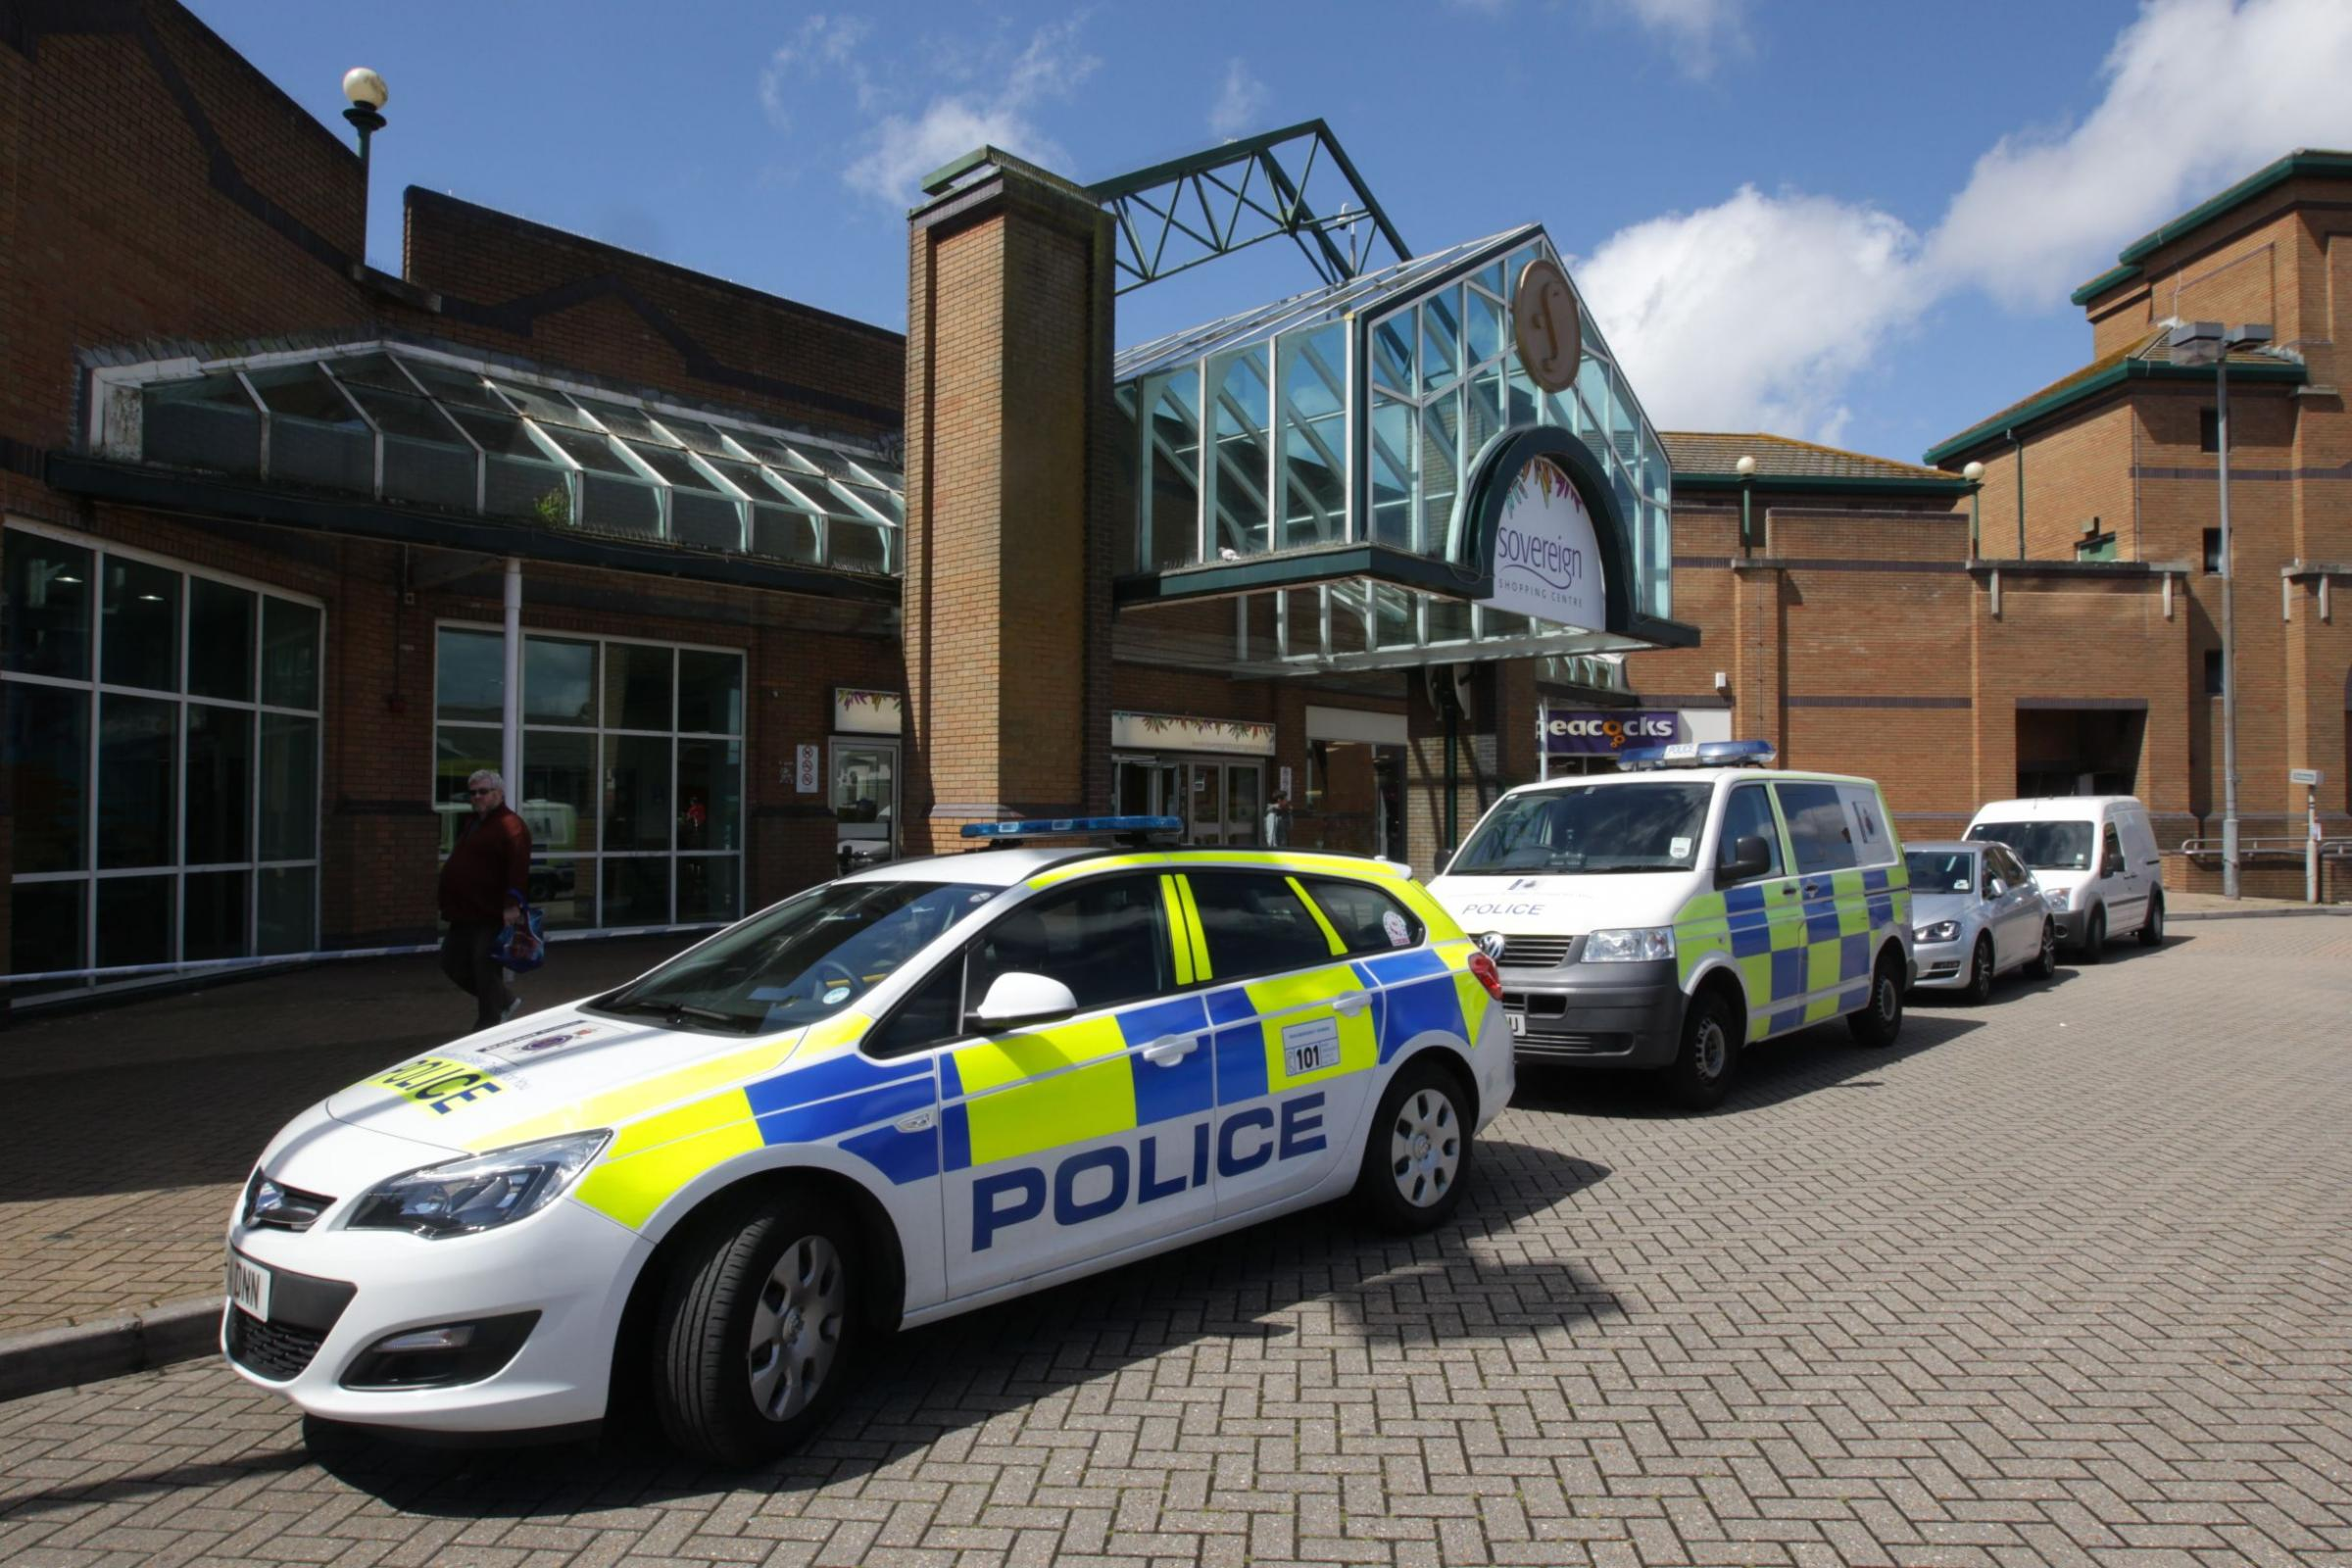 VIDEO: Burglar targets three stores at Boscombe's Sovereign Centre in overnight break-in